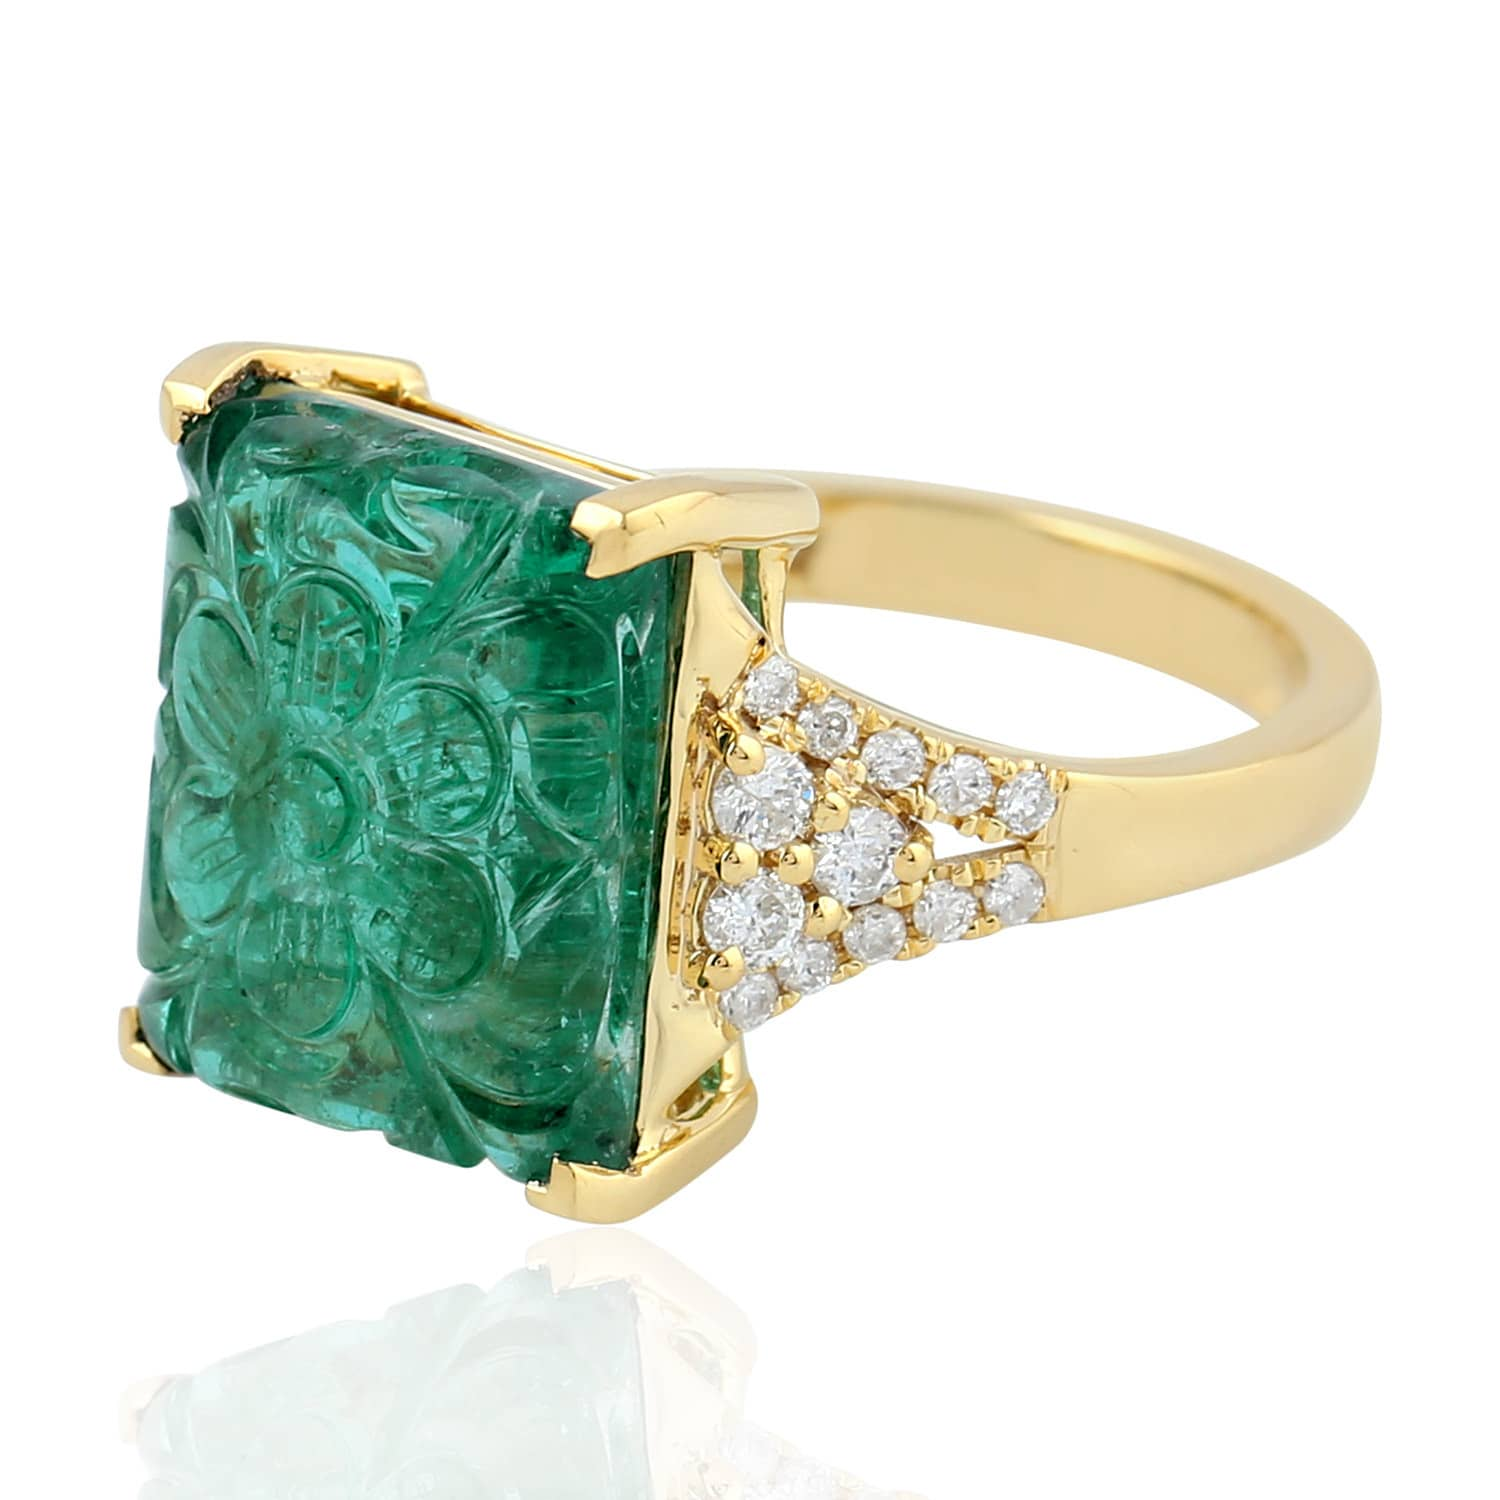 18kt Yellow Gold Flower Design Carving Emerald Pave Diamond Ring By Artisan